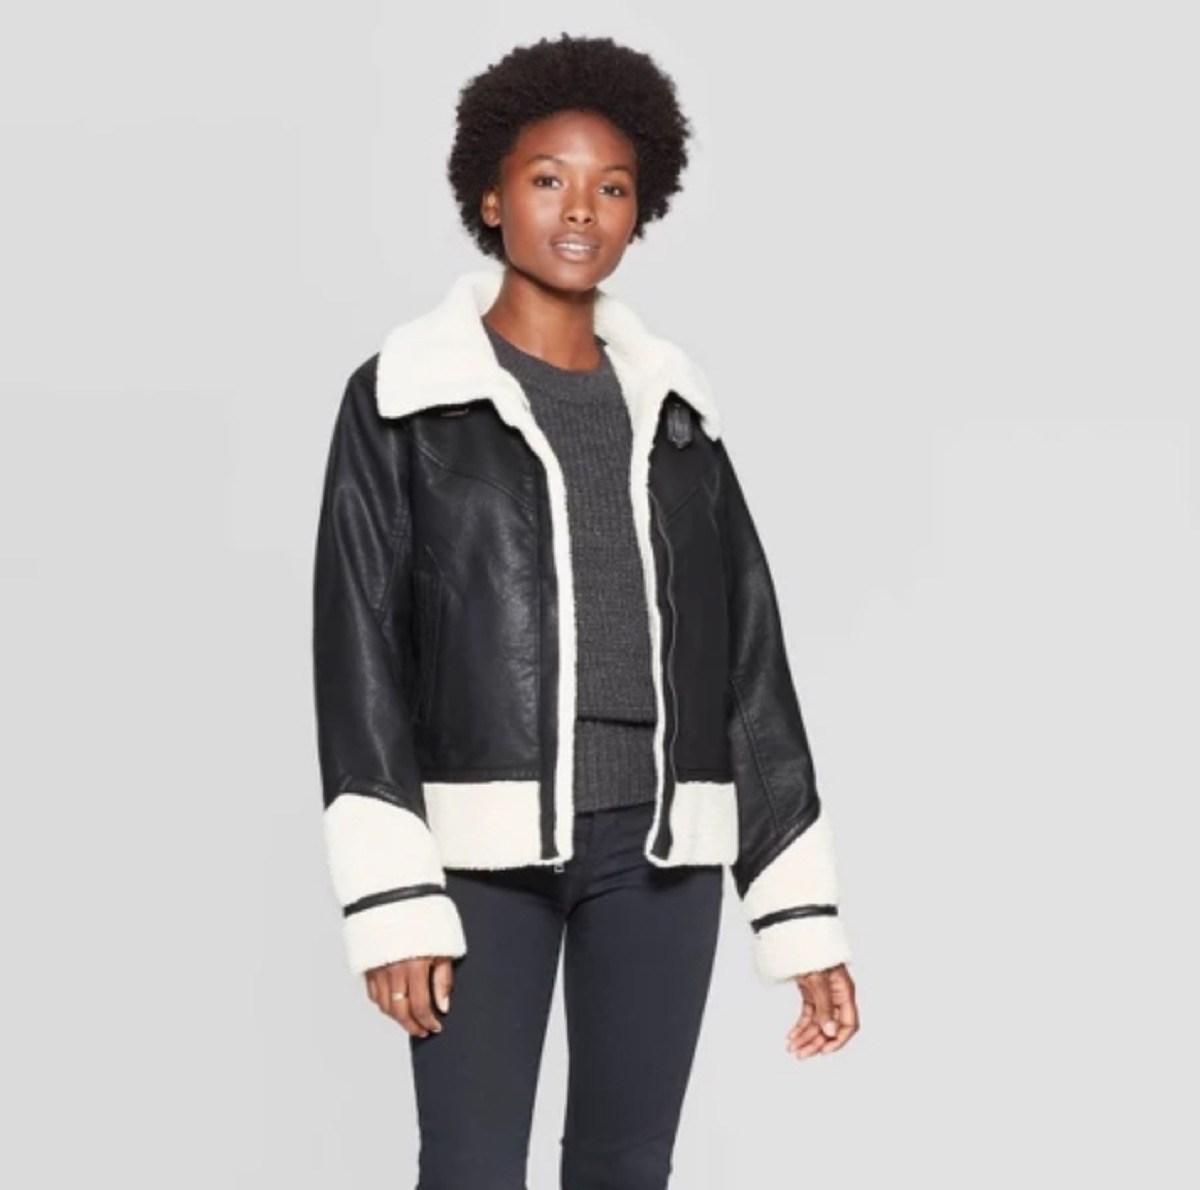 woman with black and white jacket and black leggings, women's coats for winter